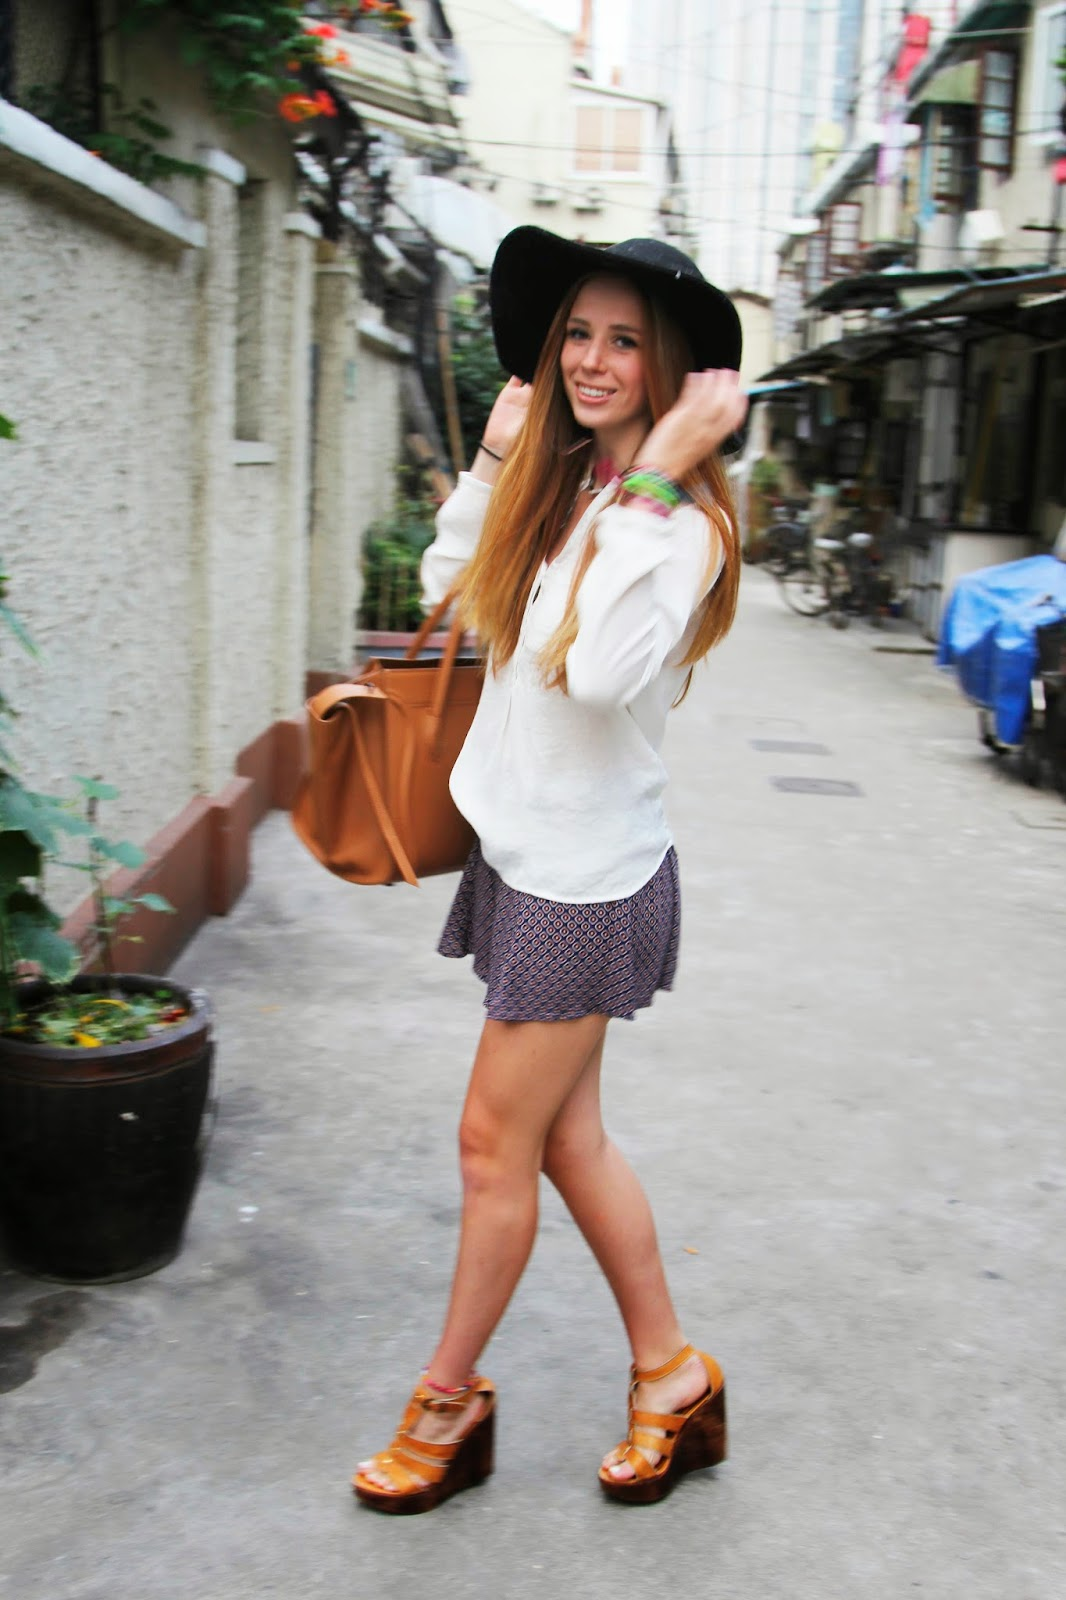 Fashion Amp Photography Blog Of A Foreigner